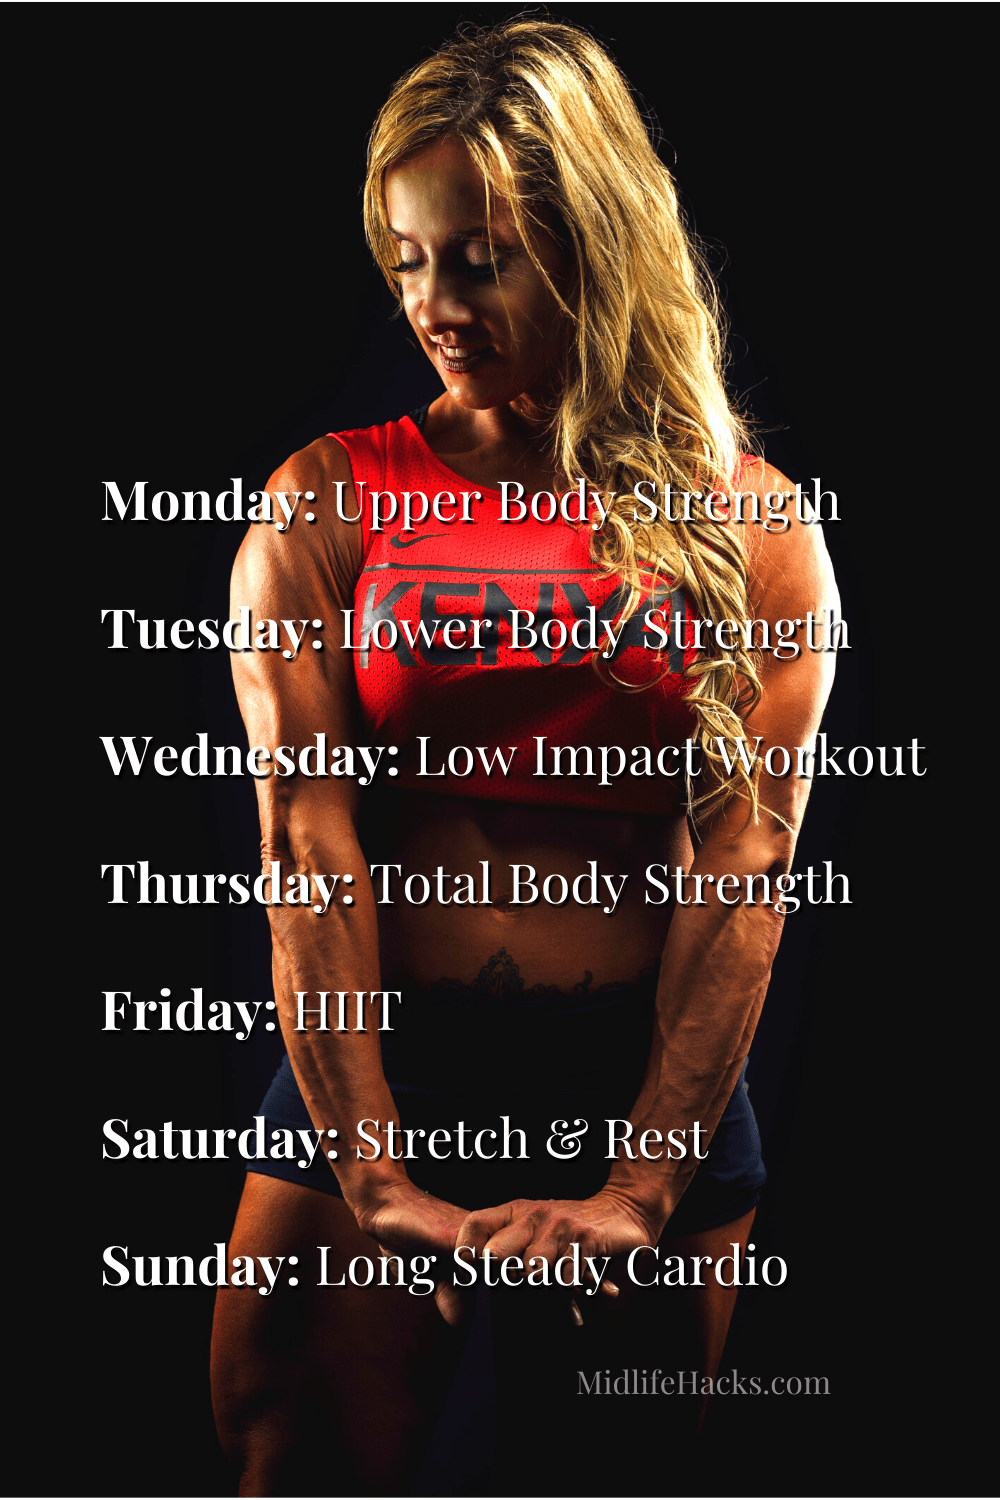 A simple weekly fitness plan overlaid on a woman with very toned arm muscles